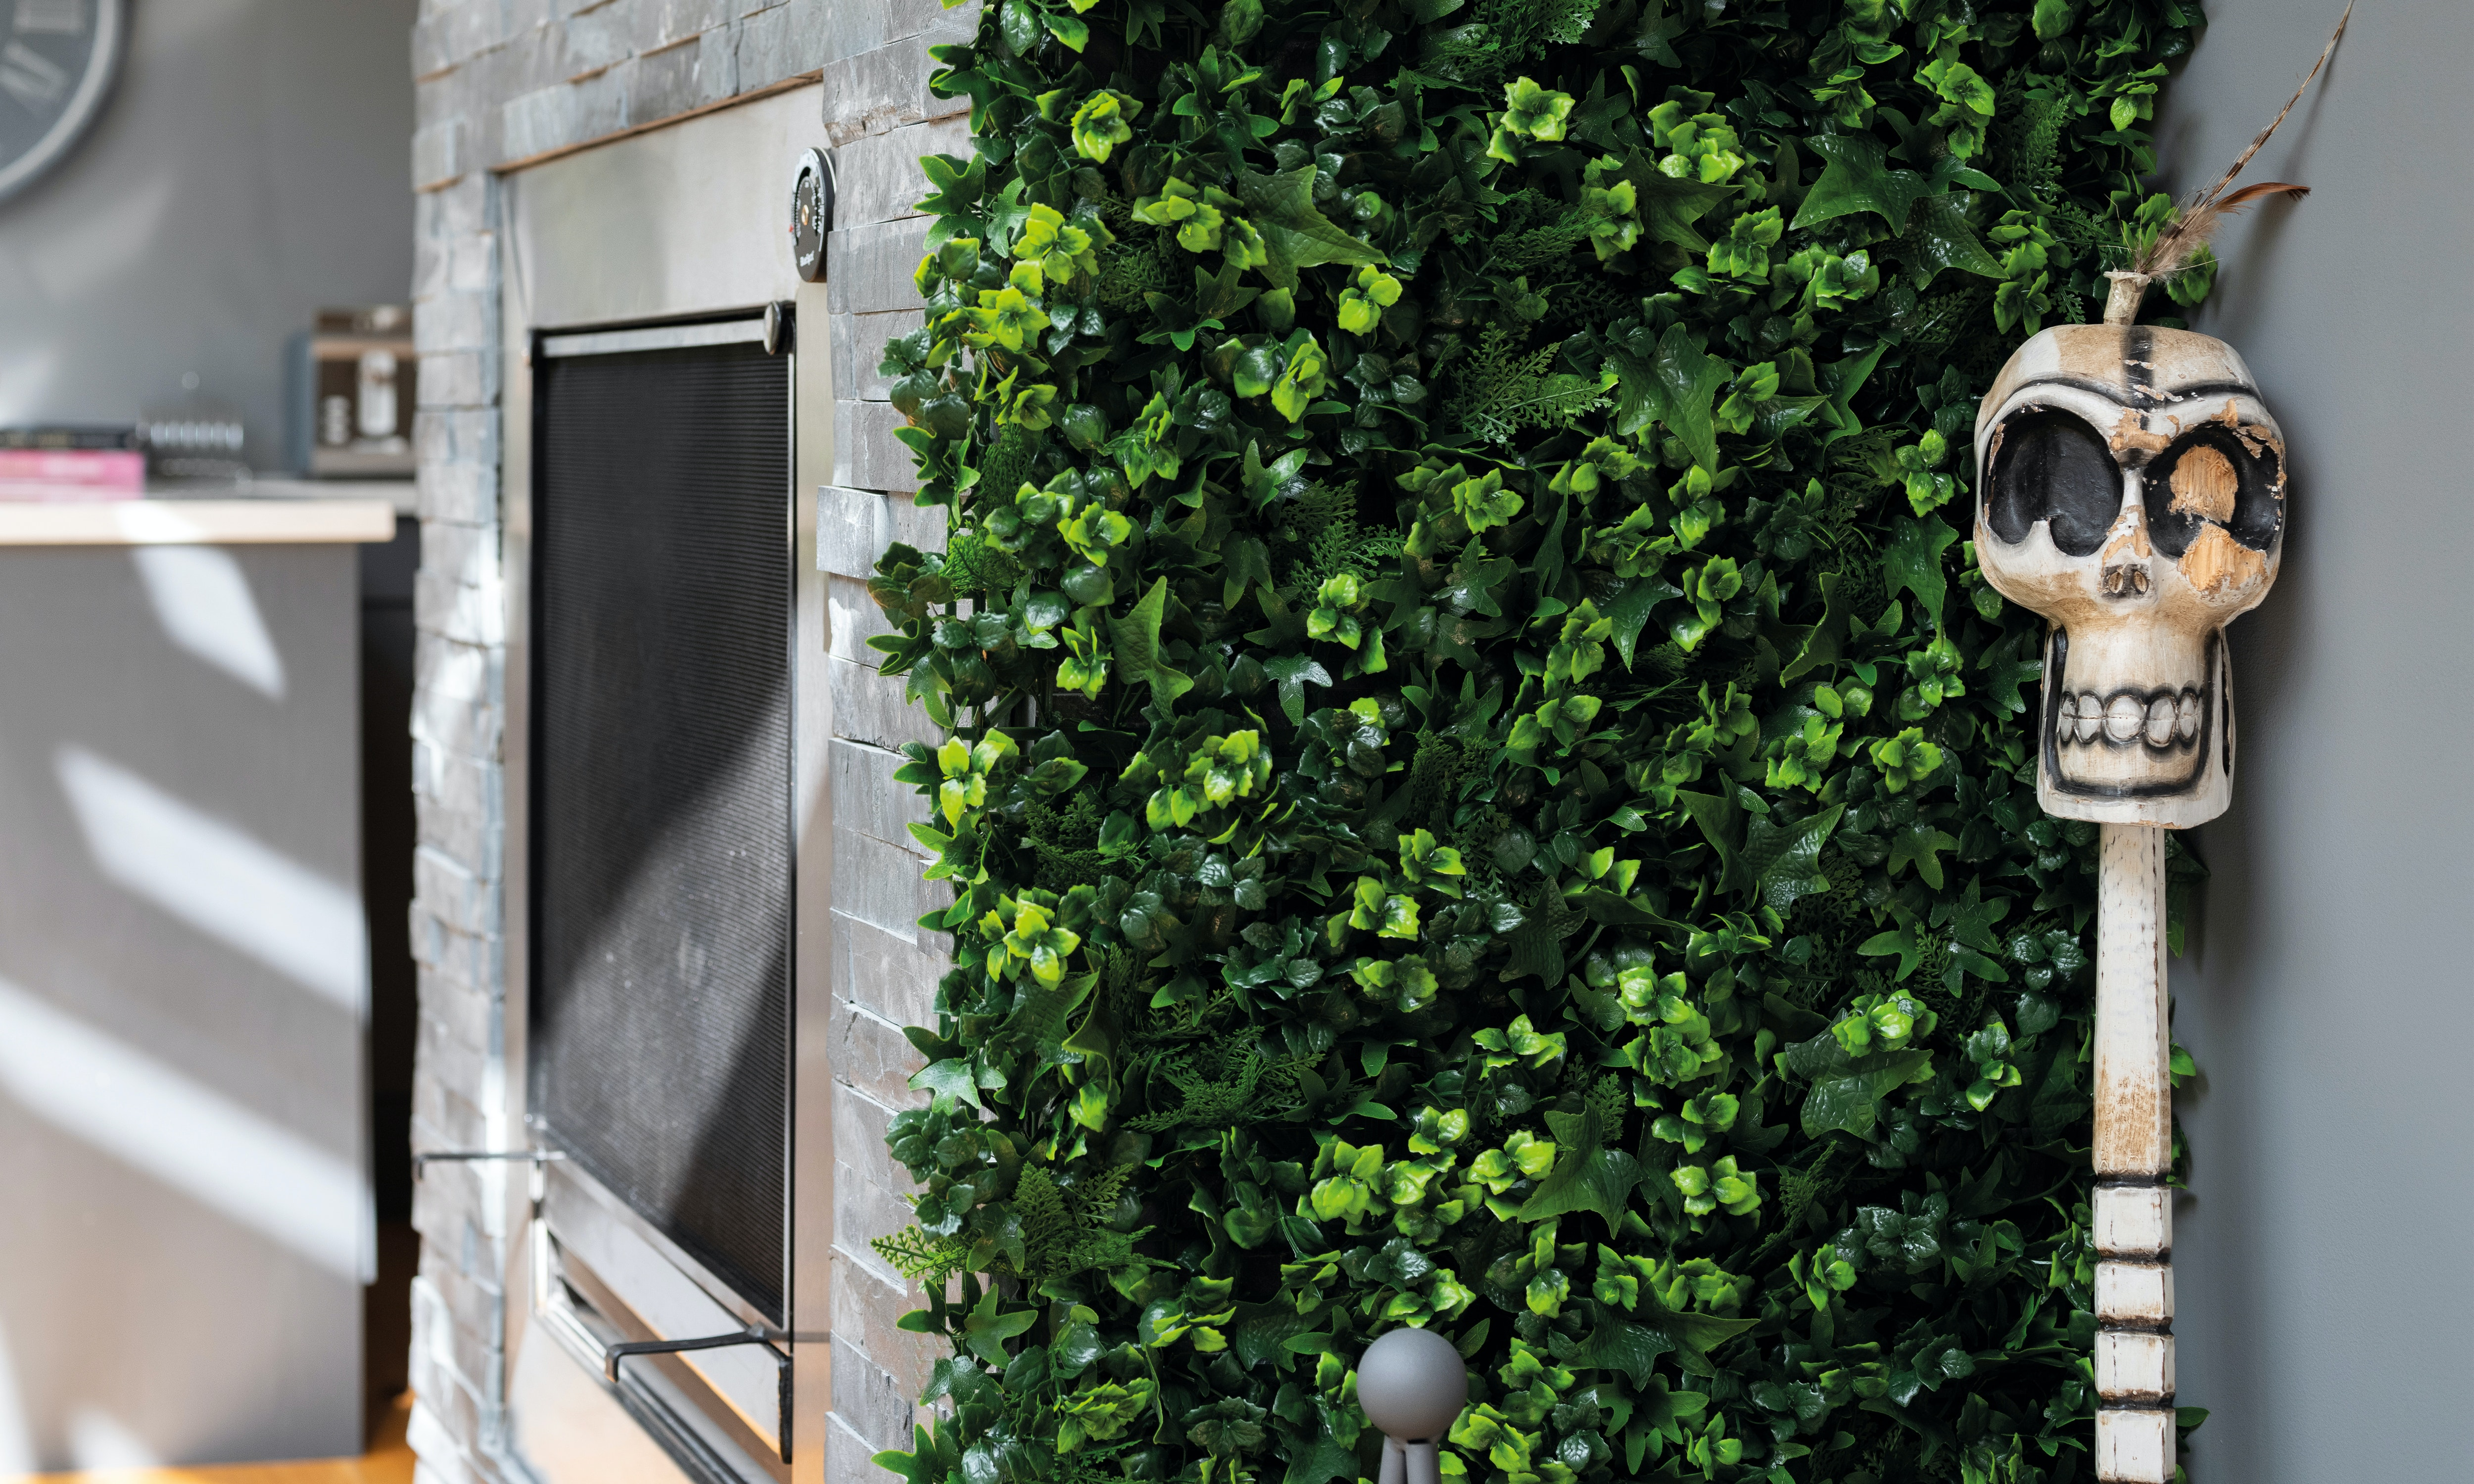 Flame resistant artificial living wall mat by fireplace